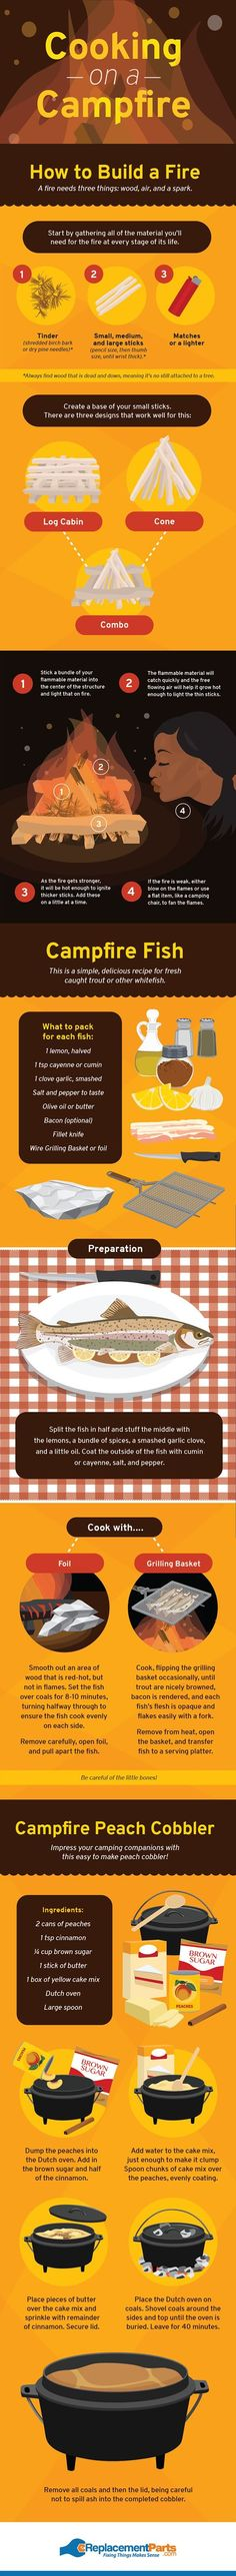 An Illustrated Guide to Cooking on a Campfire